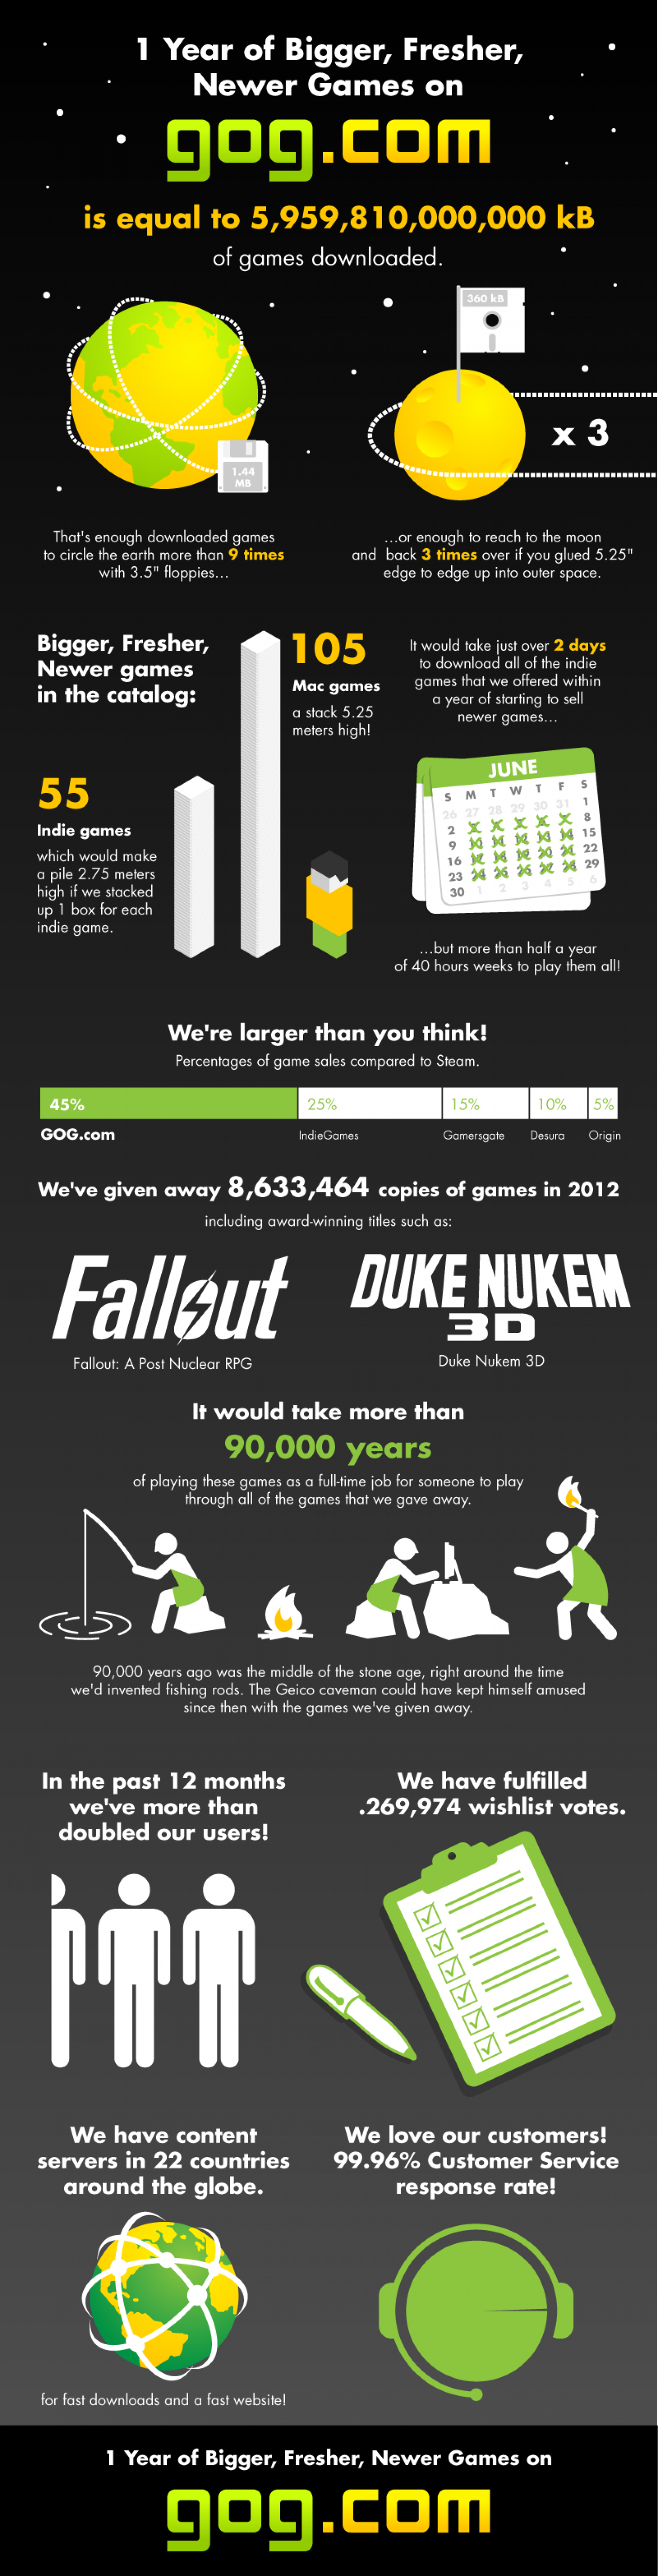 1 Year of Bigger, Fresher, Newer Games Infographic